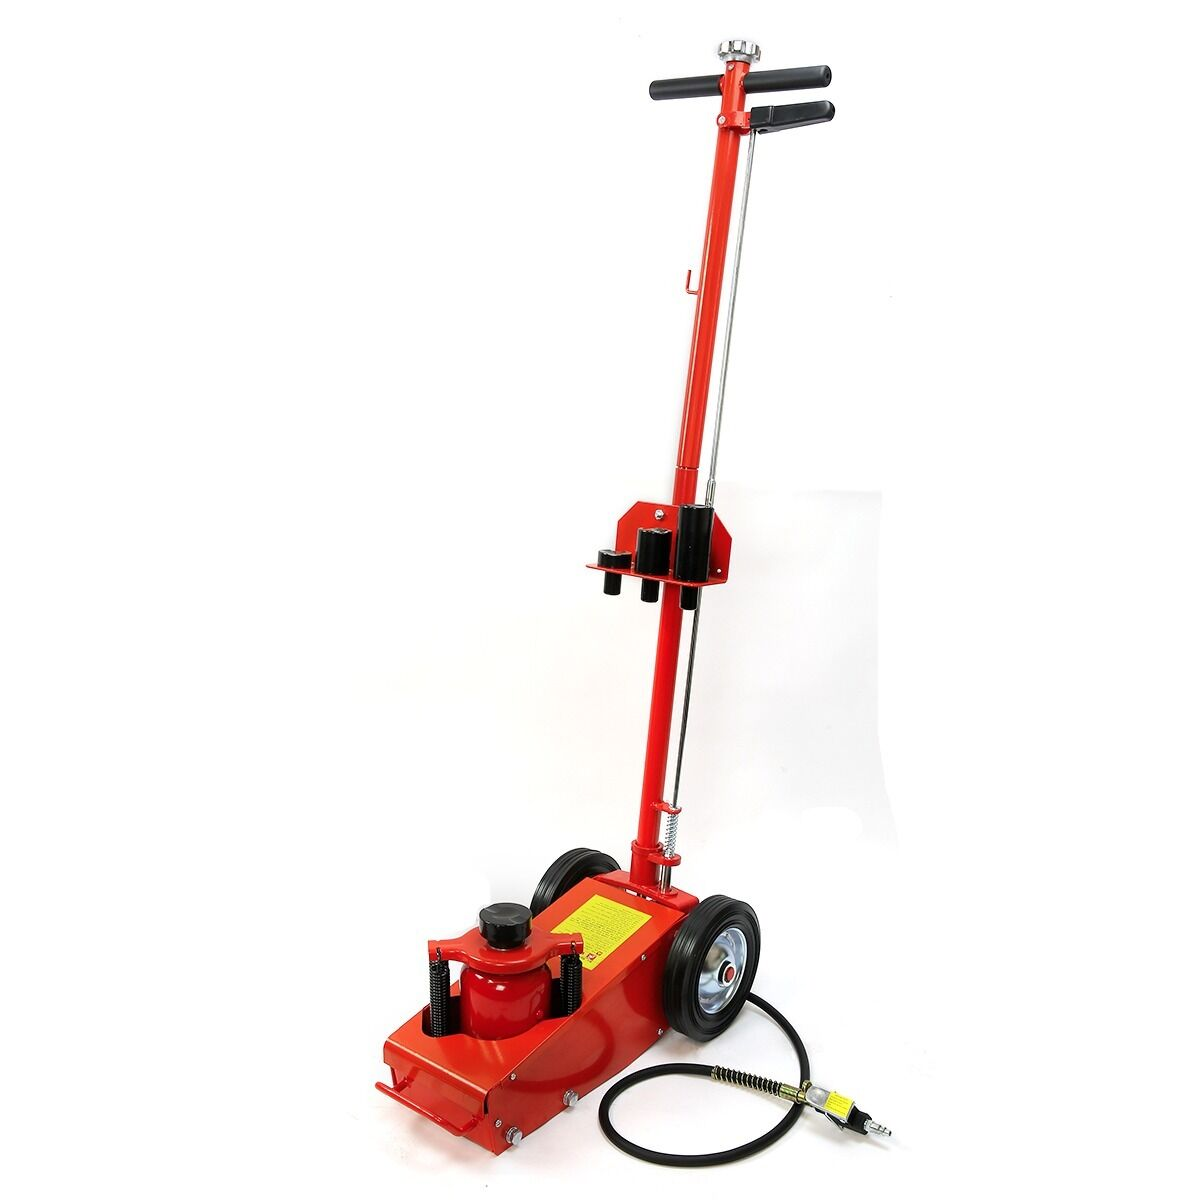 22 Ton Air Hydraulic Floor Jack  Hd Truck Power Lift Auto Truck Repair Jacks HD  eBay